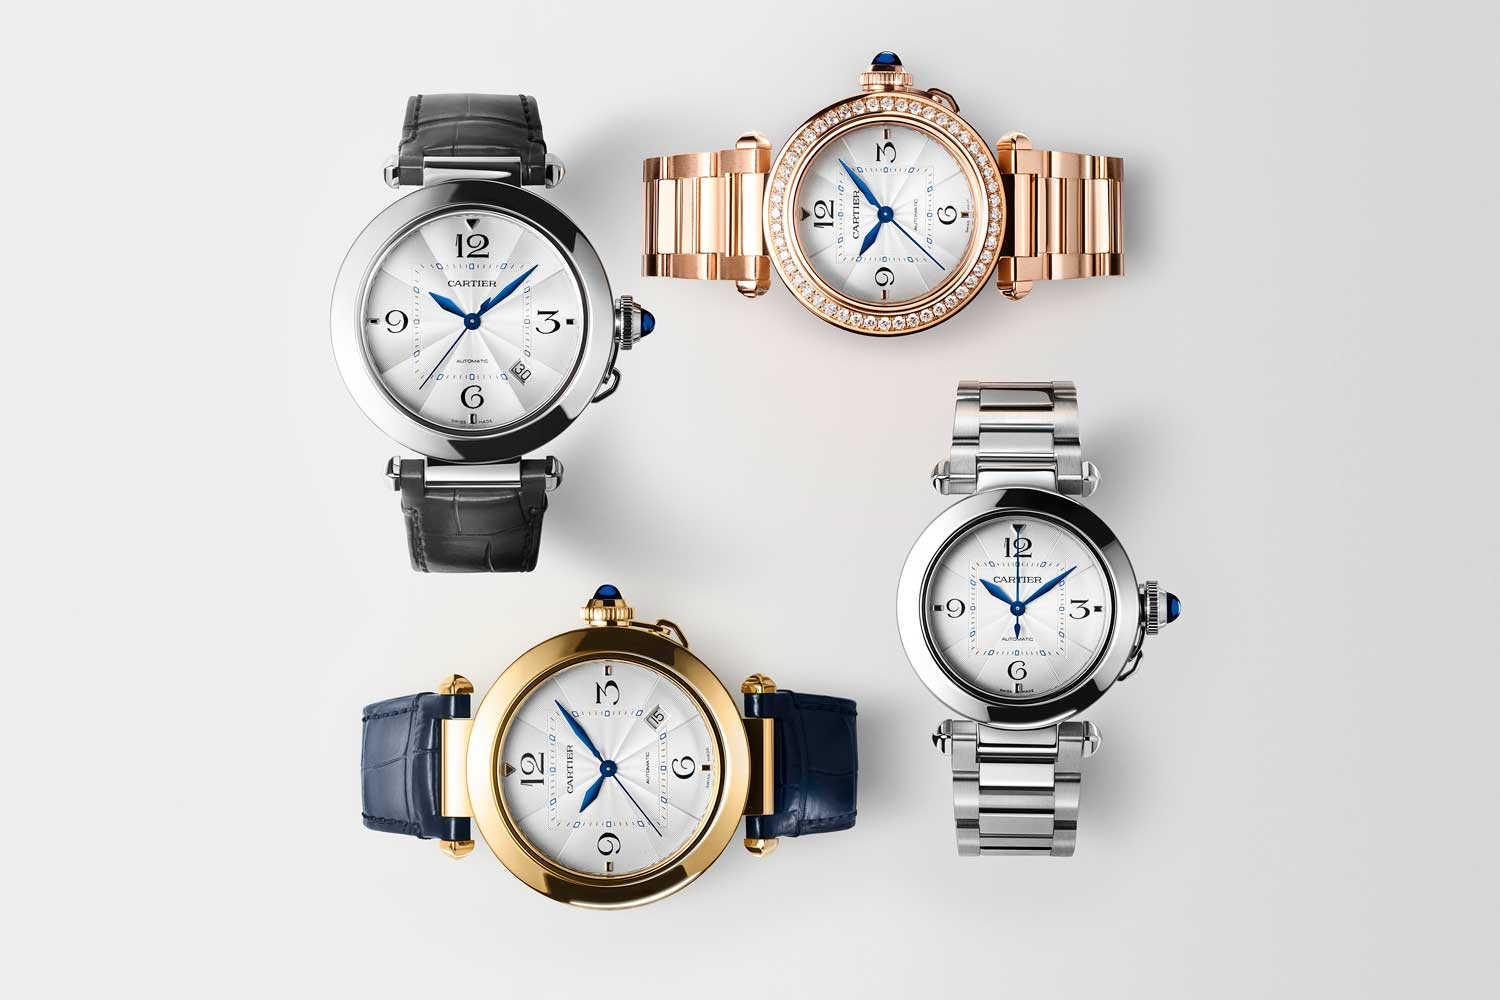 The new Pasha de Cartier family is available in steel, yellow and pink gold, in two sizes with alligator leather straps or bracelets